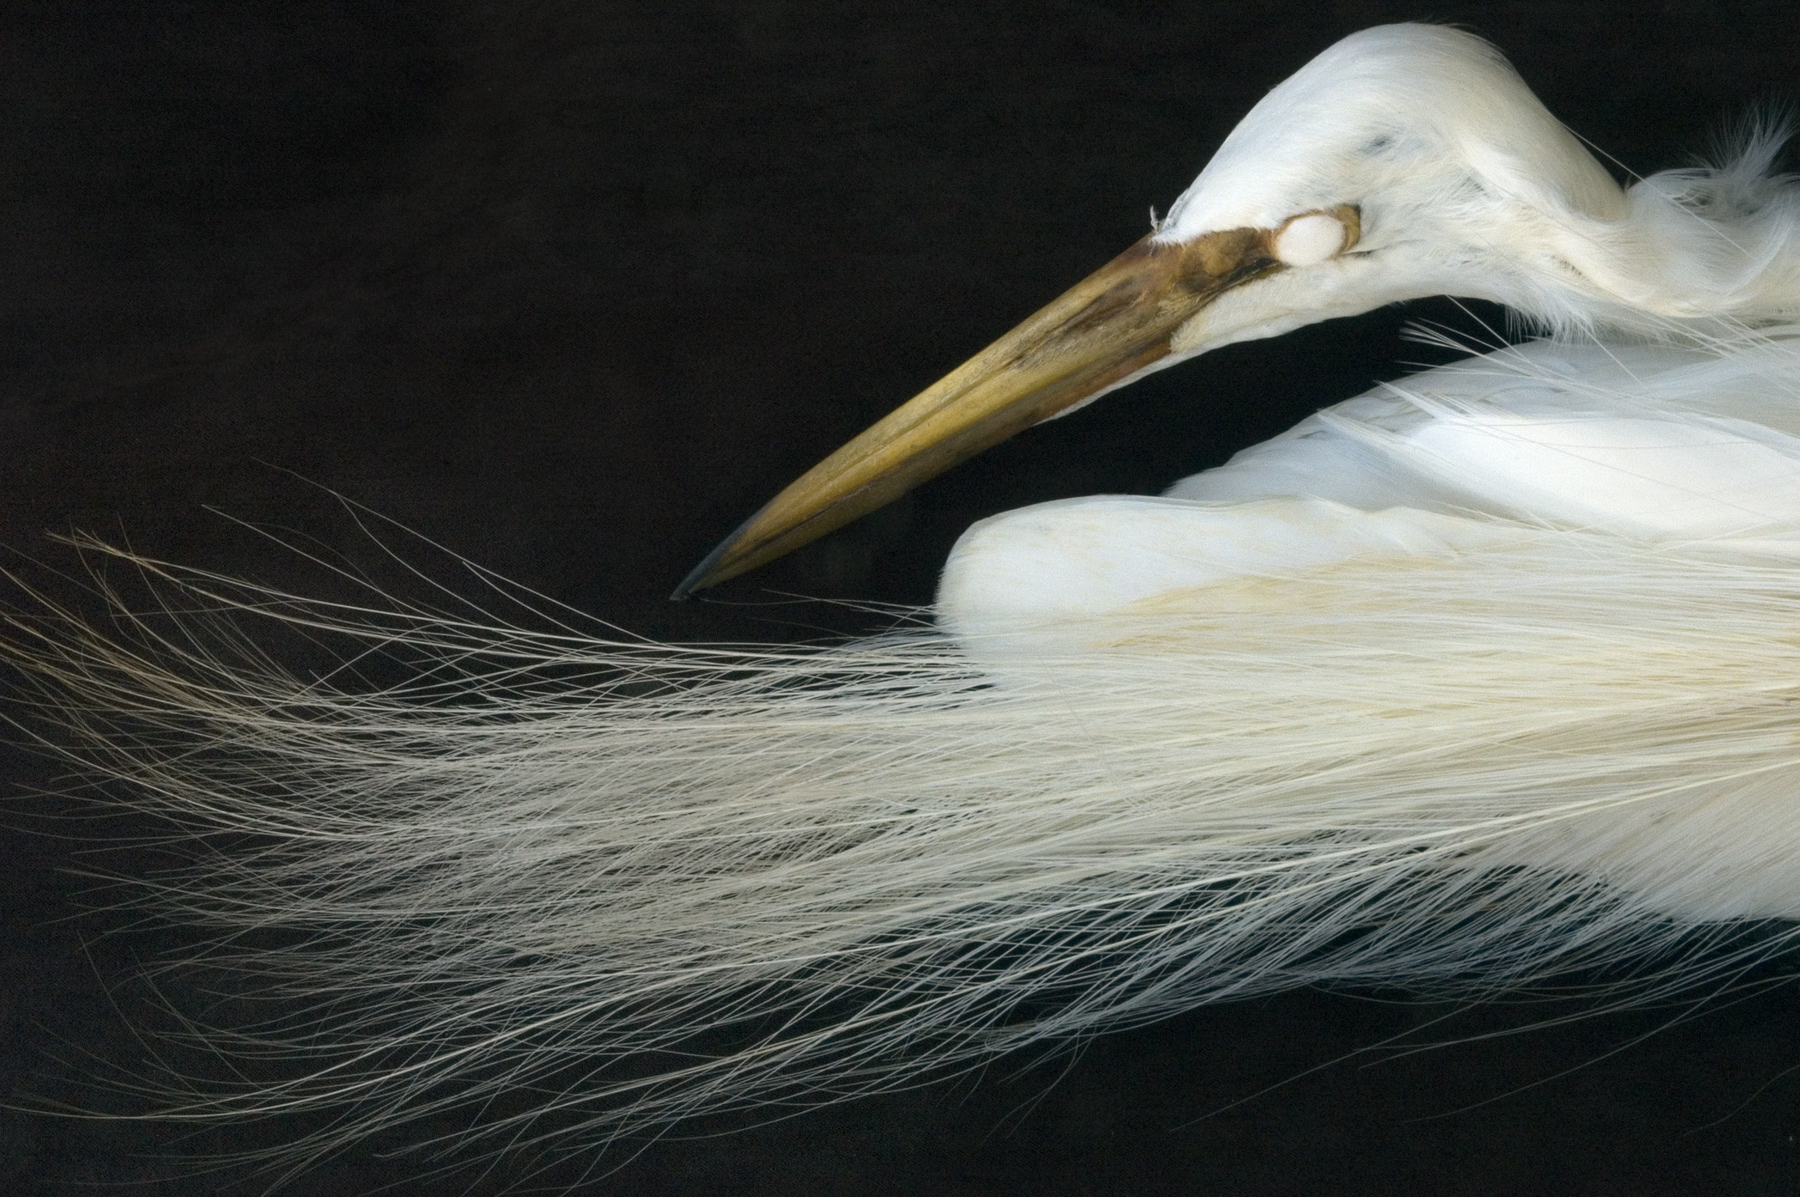 Snowy egret, from the collection of the Western Foundation of Vertebrate Zoology.